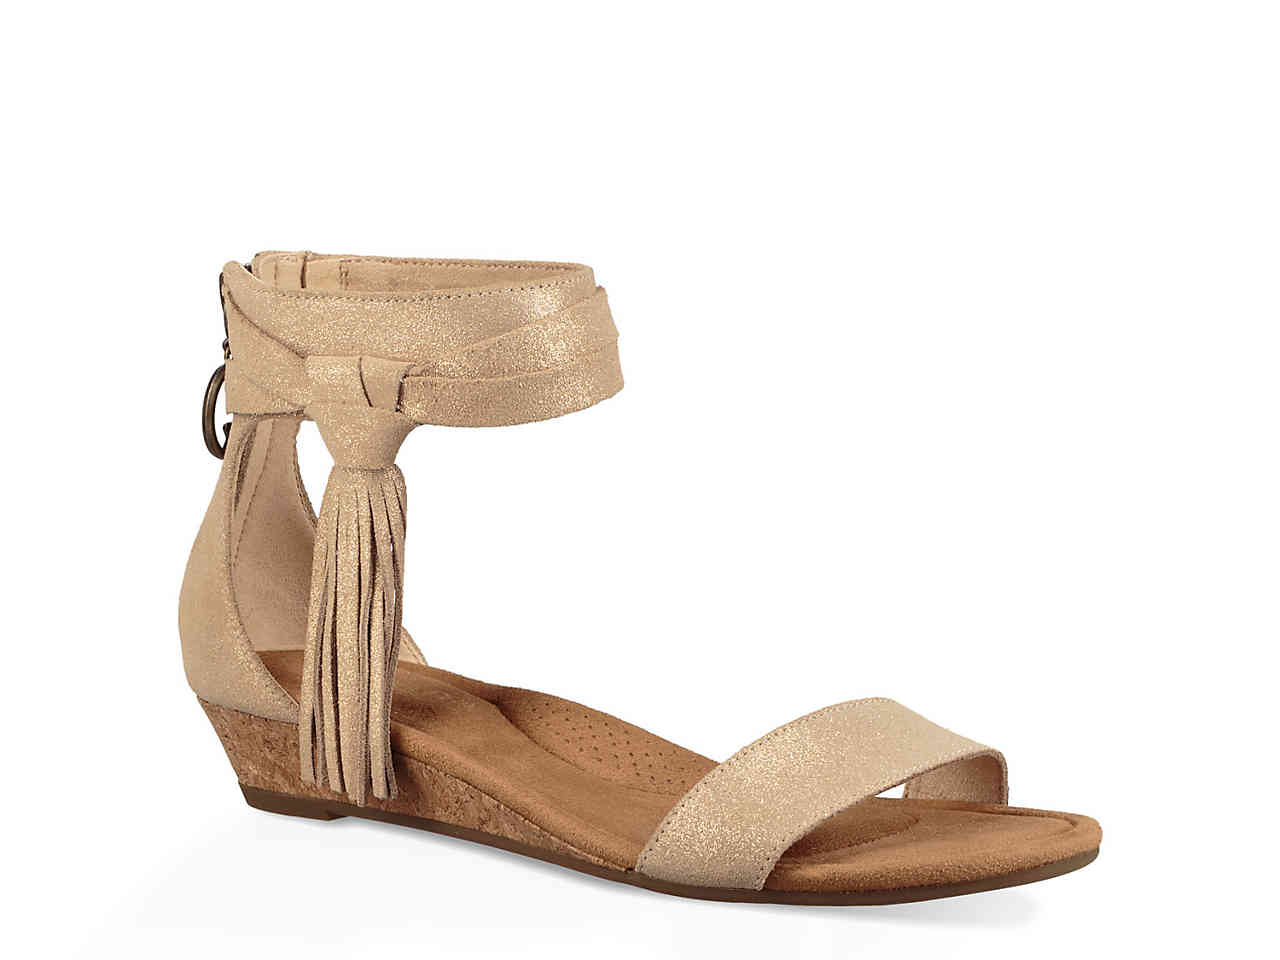 Koolaburra by ugg saige wedge sandal